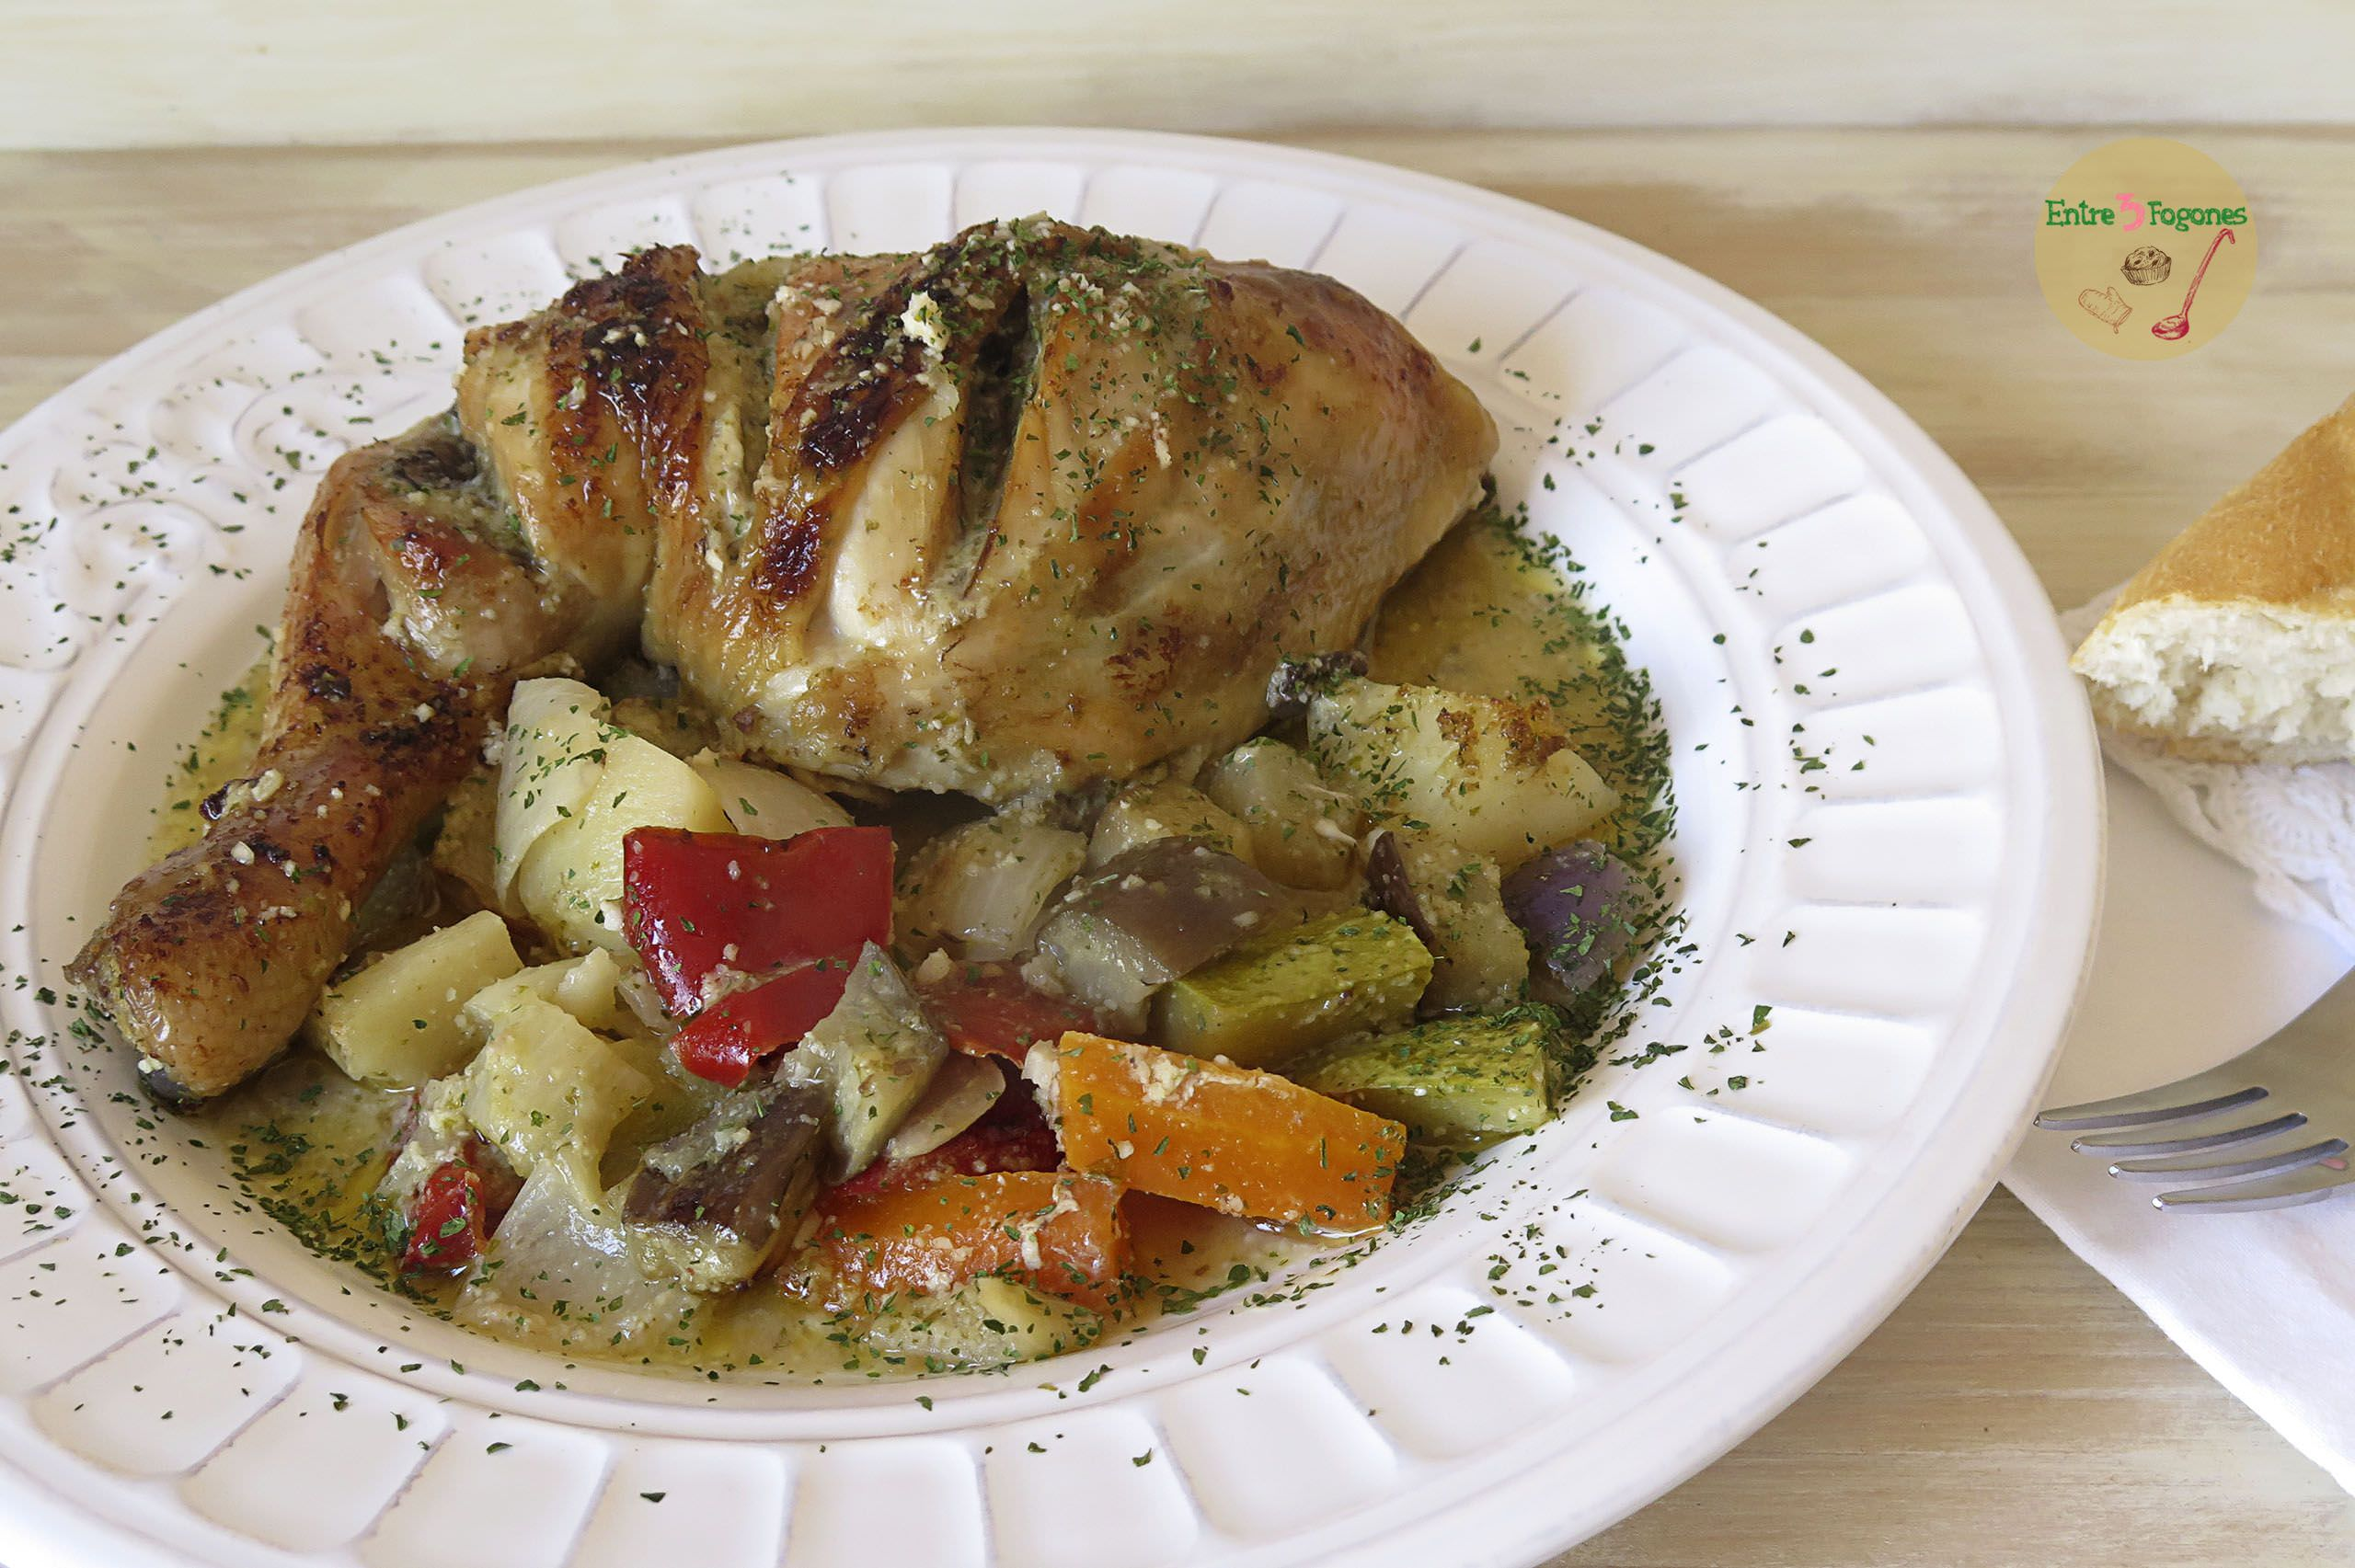 Photo of Pollo al Horno con Verduras y Picada de Almendras